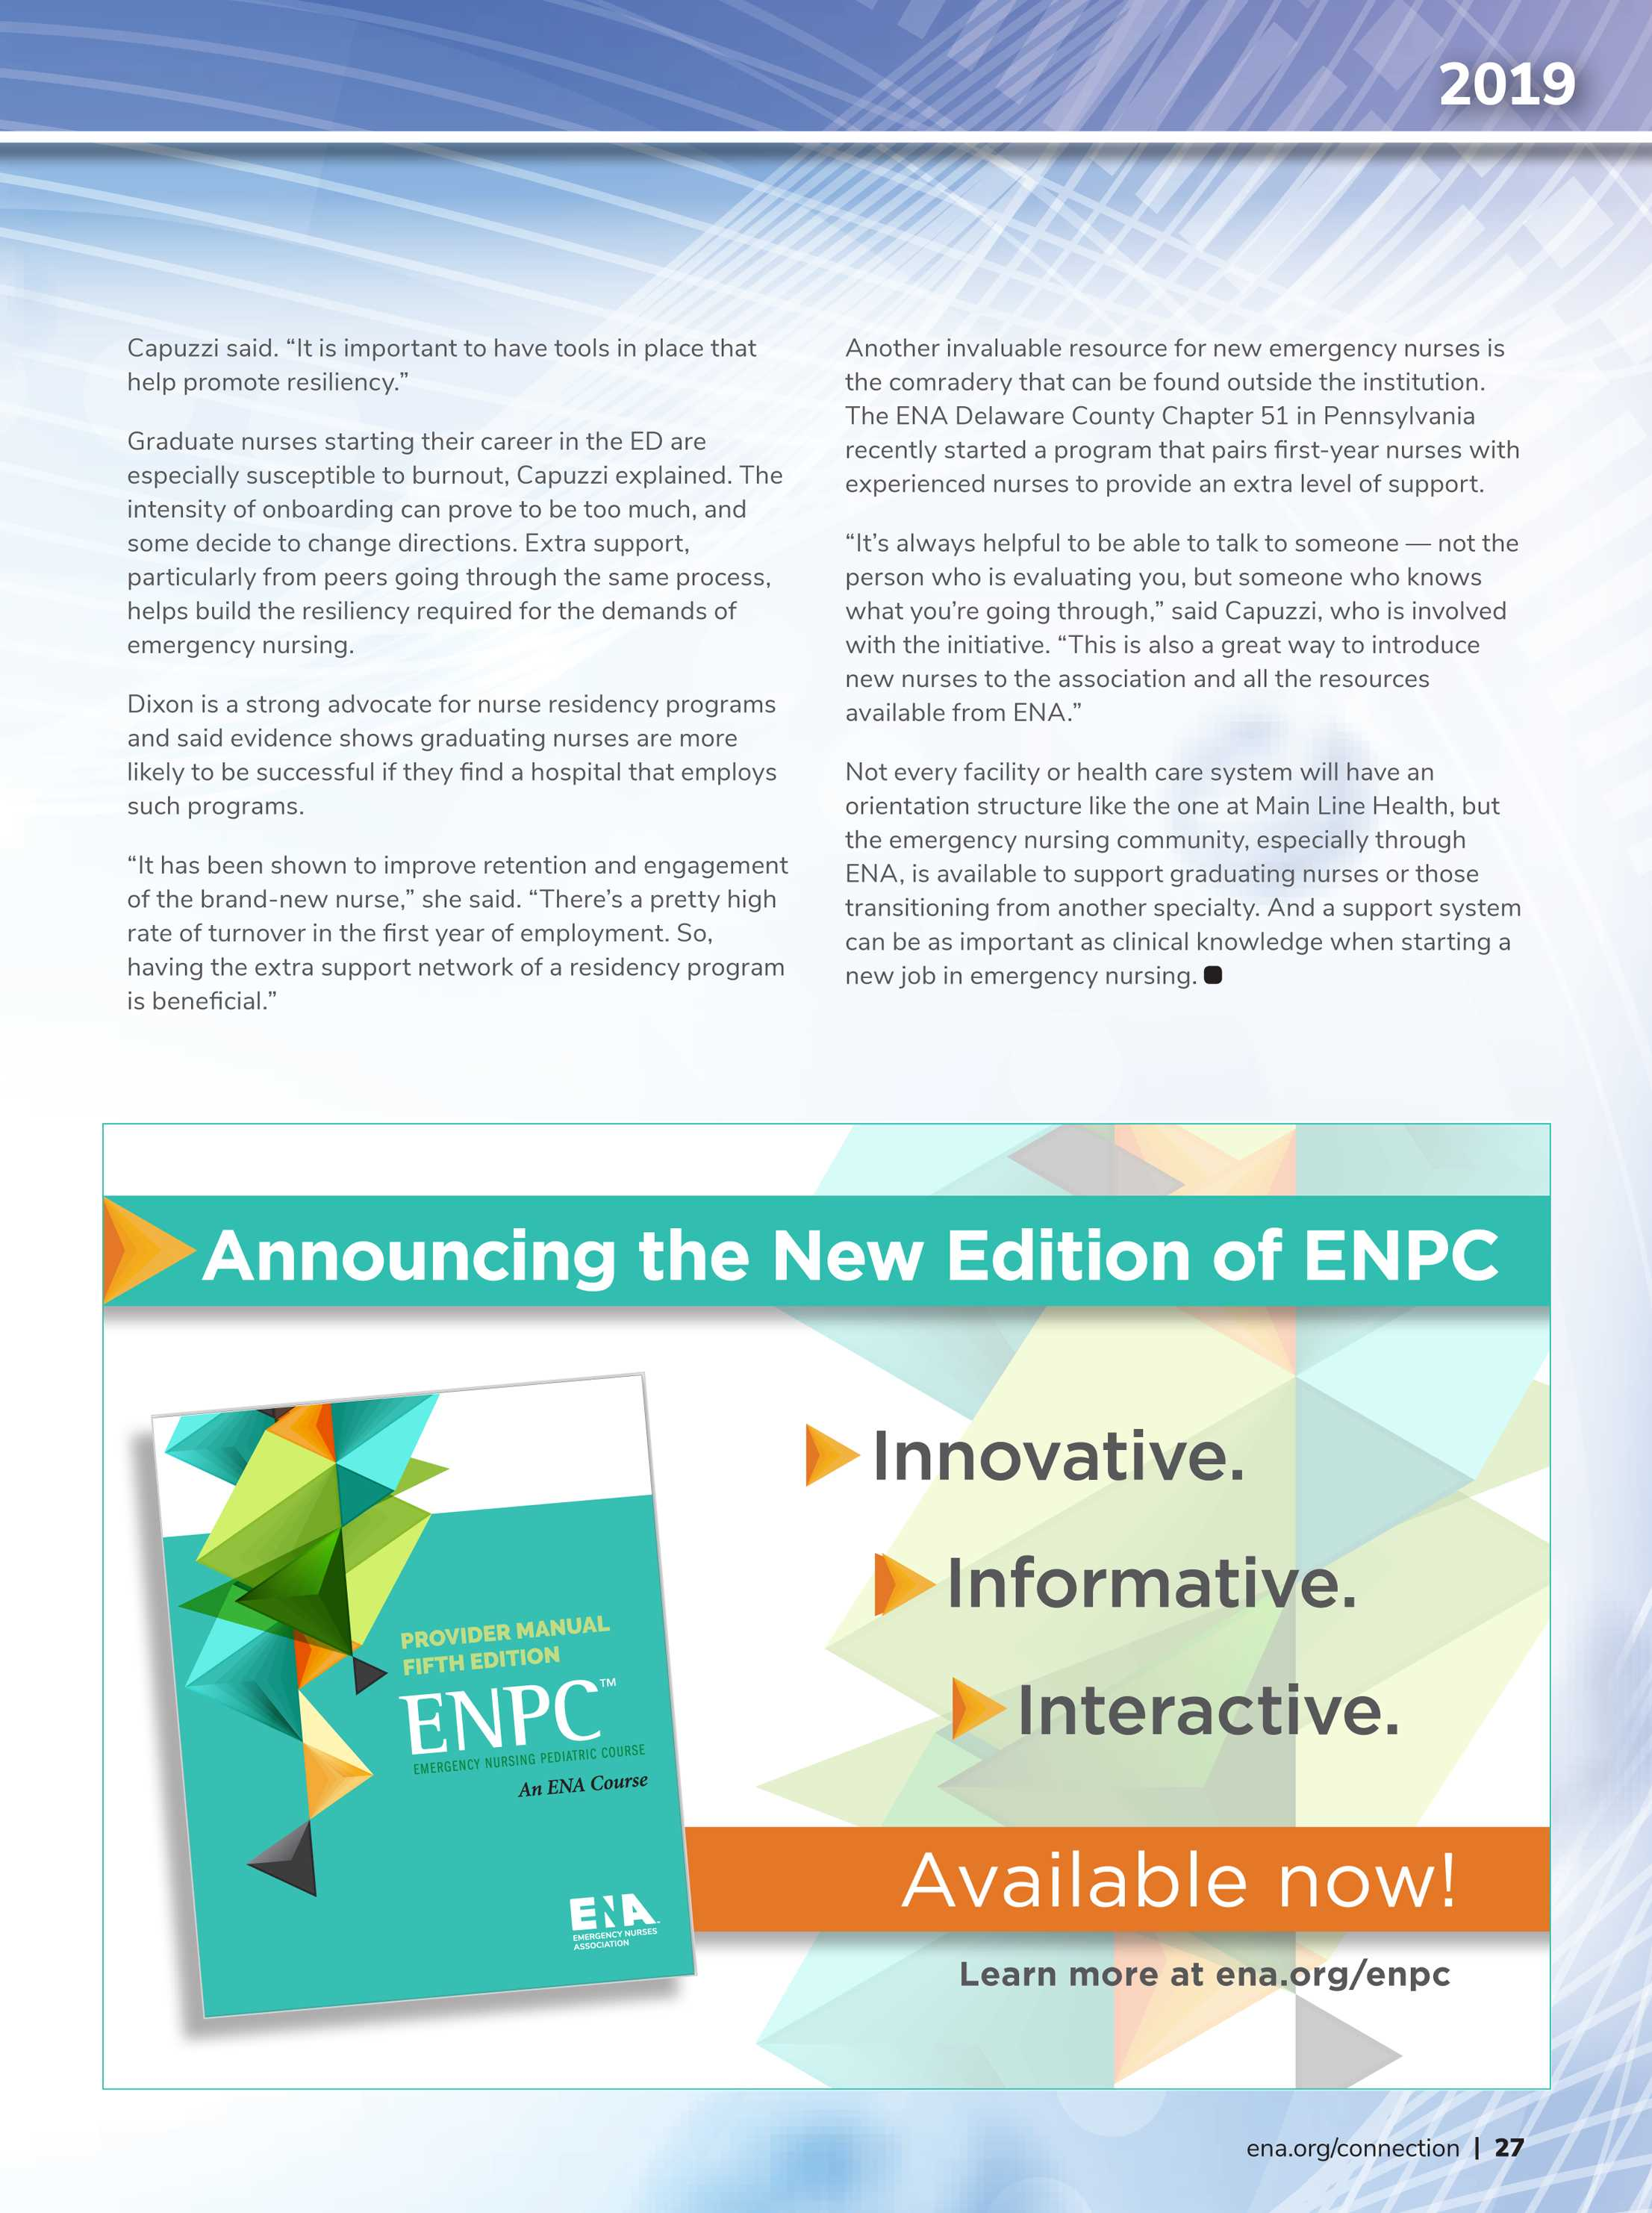 ENA Connection - February 2019 - page 27